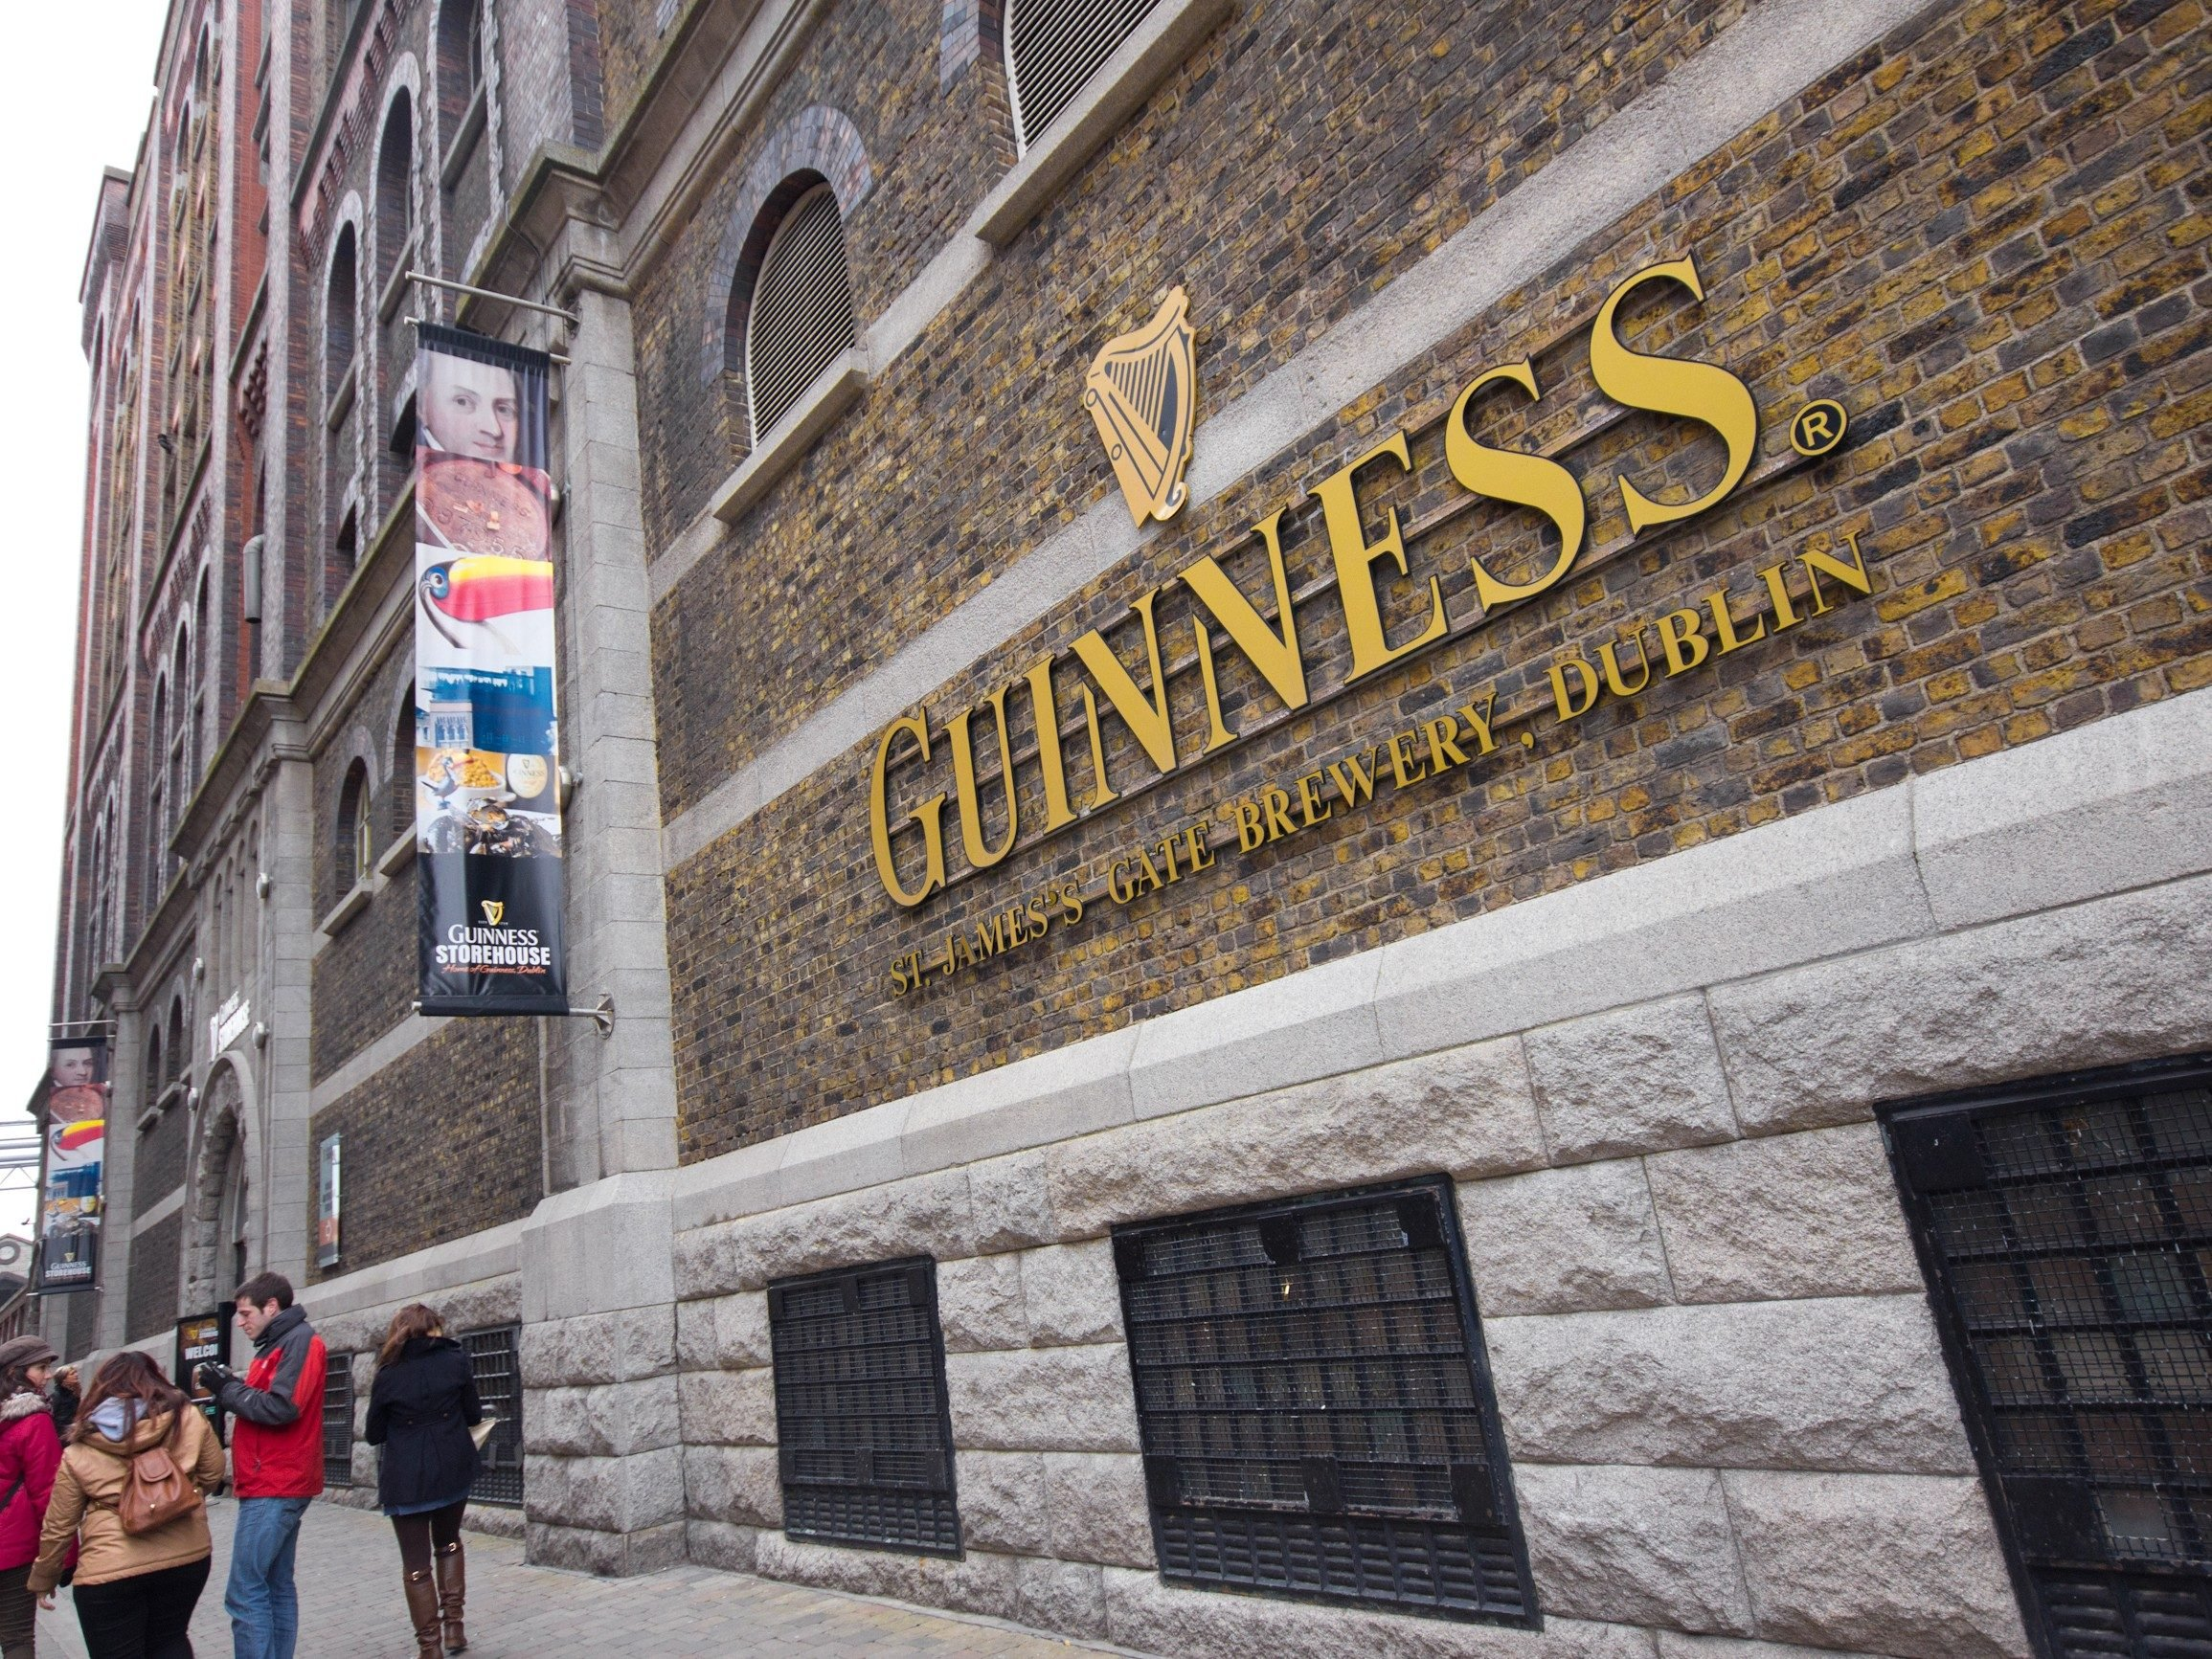 2. Tour the Guinness Storehouse